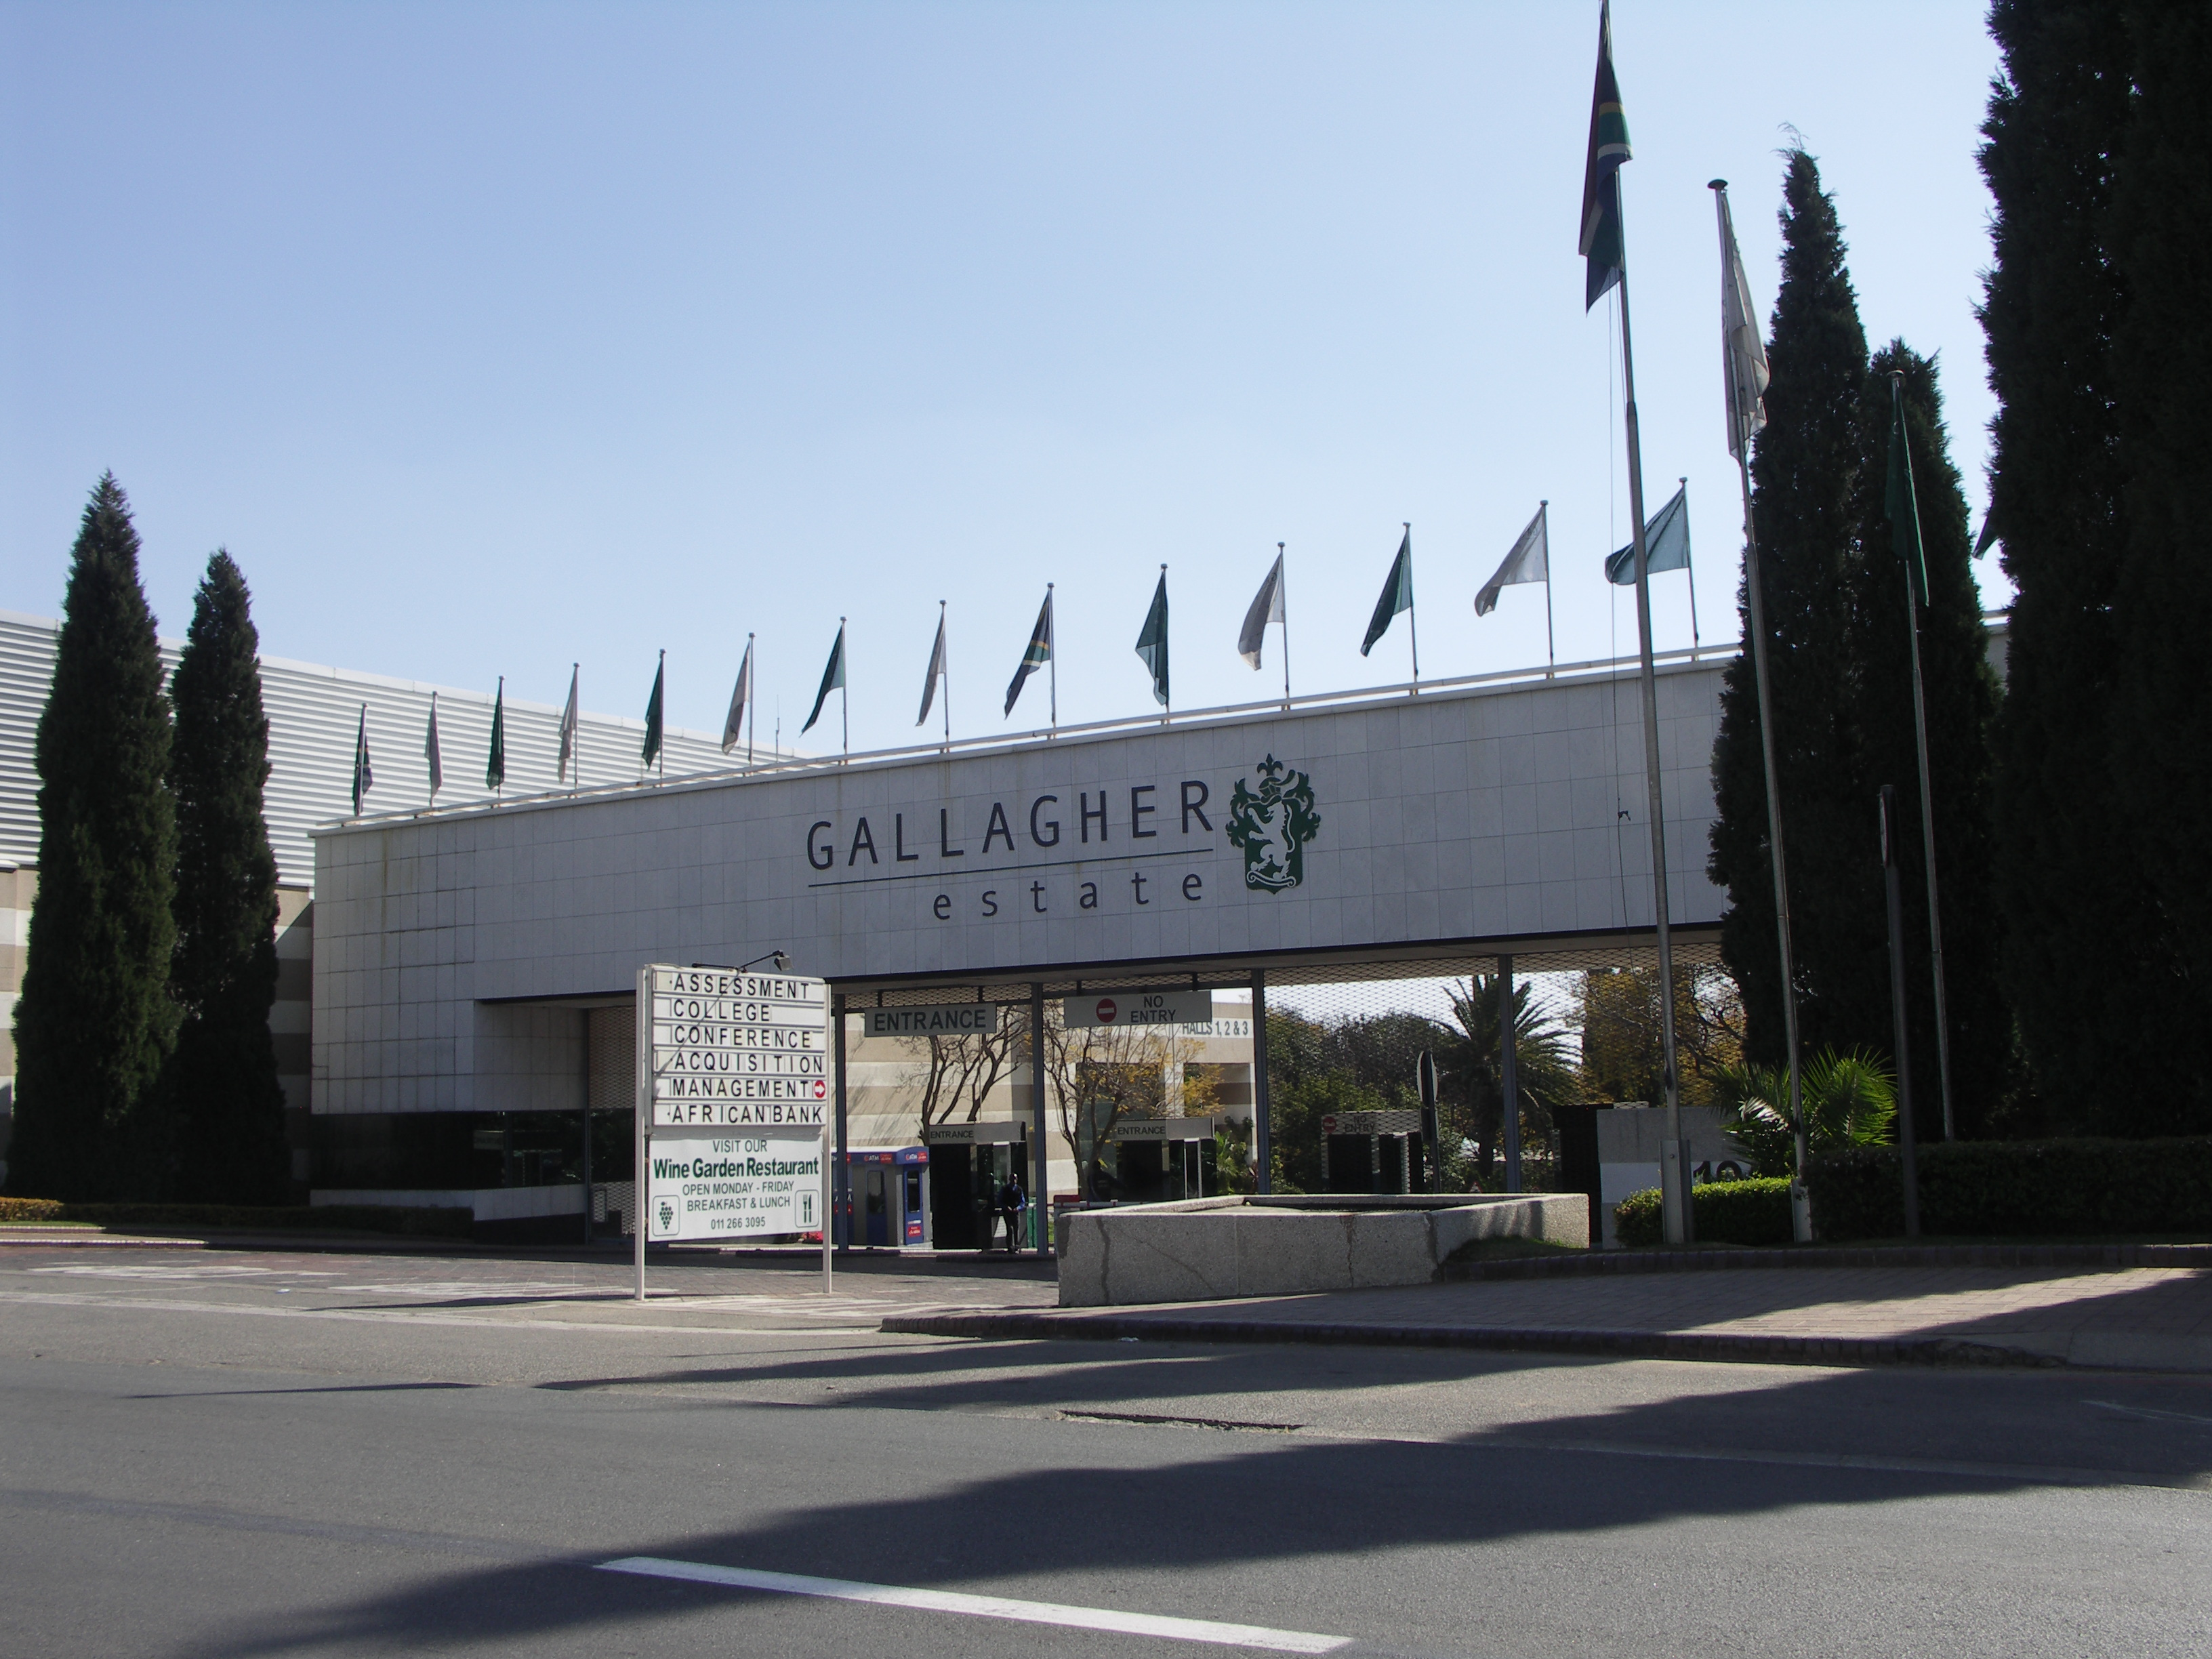 Johannesburg Gallagher Convention Centre